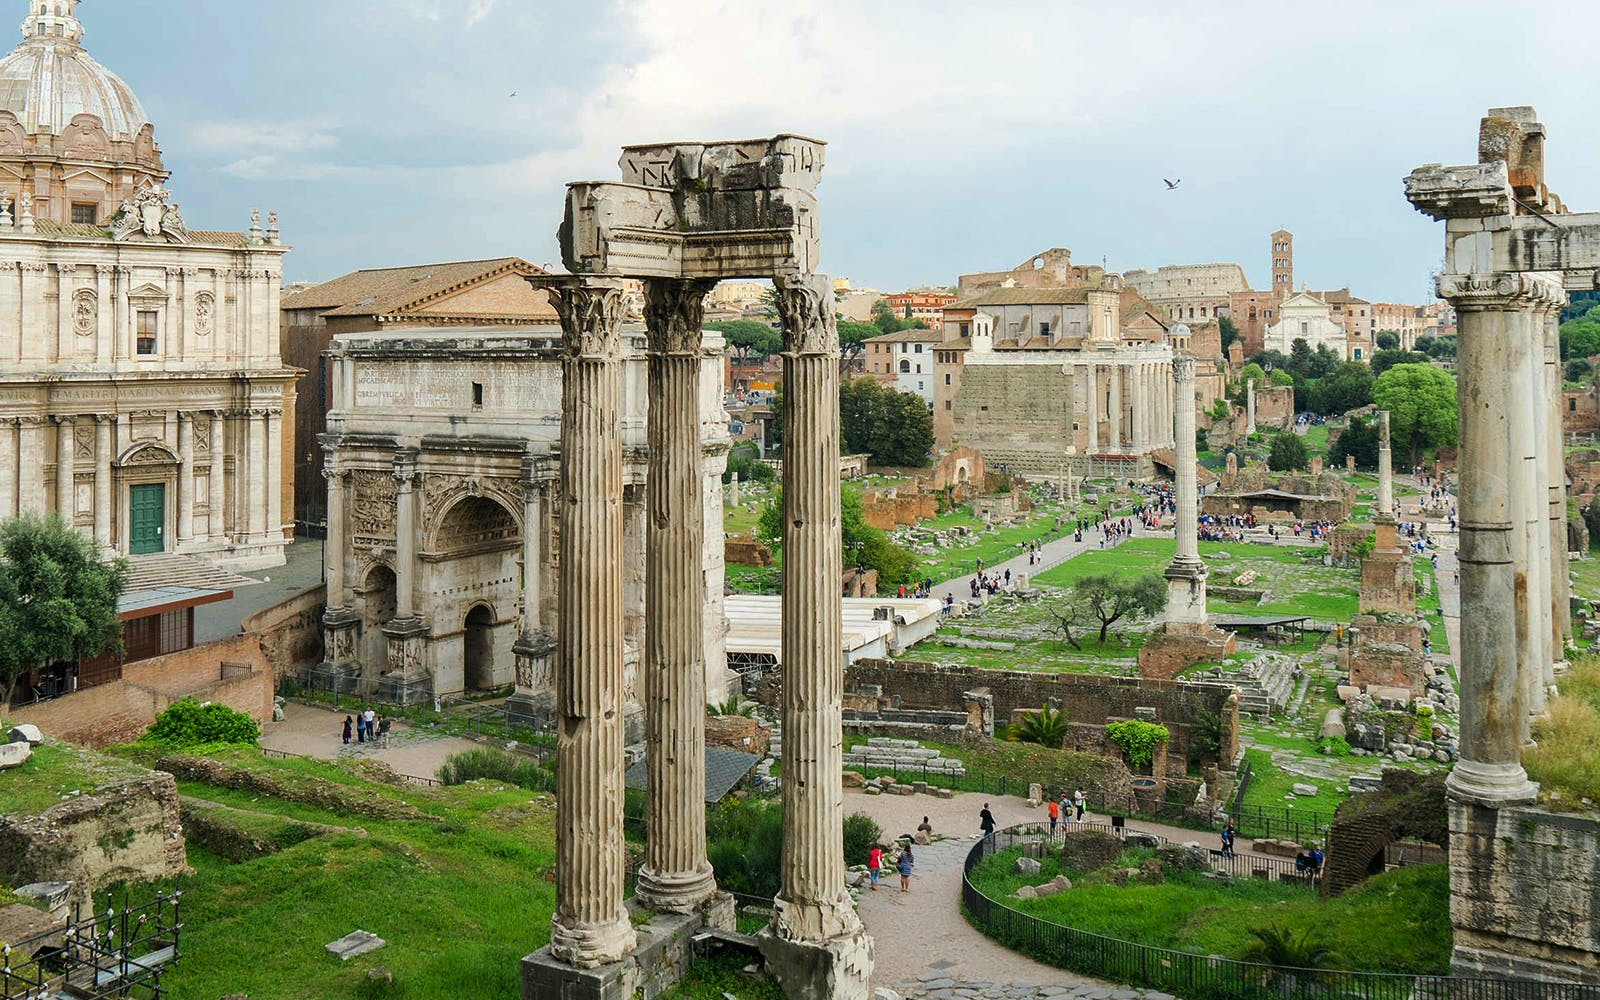 colosseum belvedere vip top tier access tour with roman forum and palatine hill-3